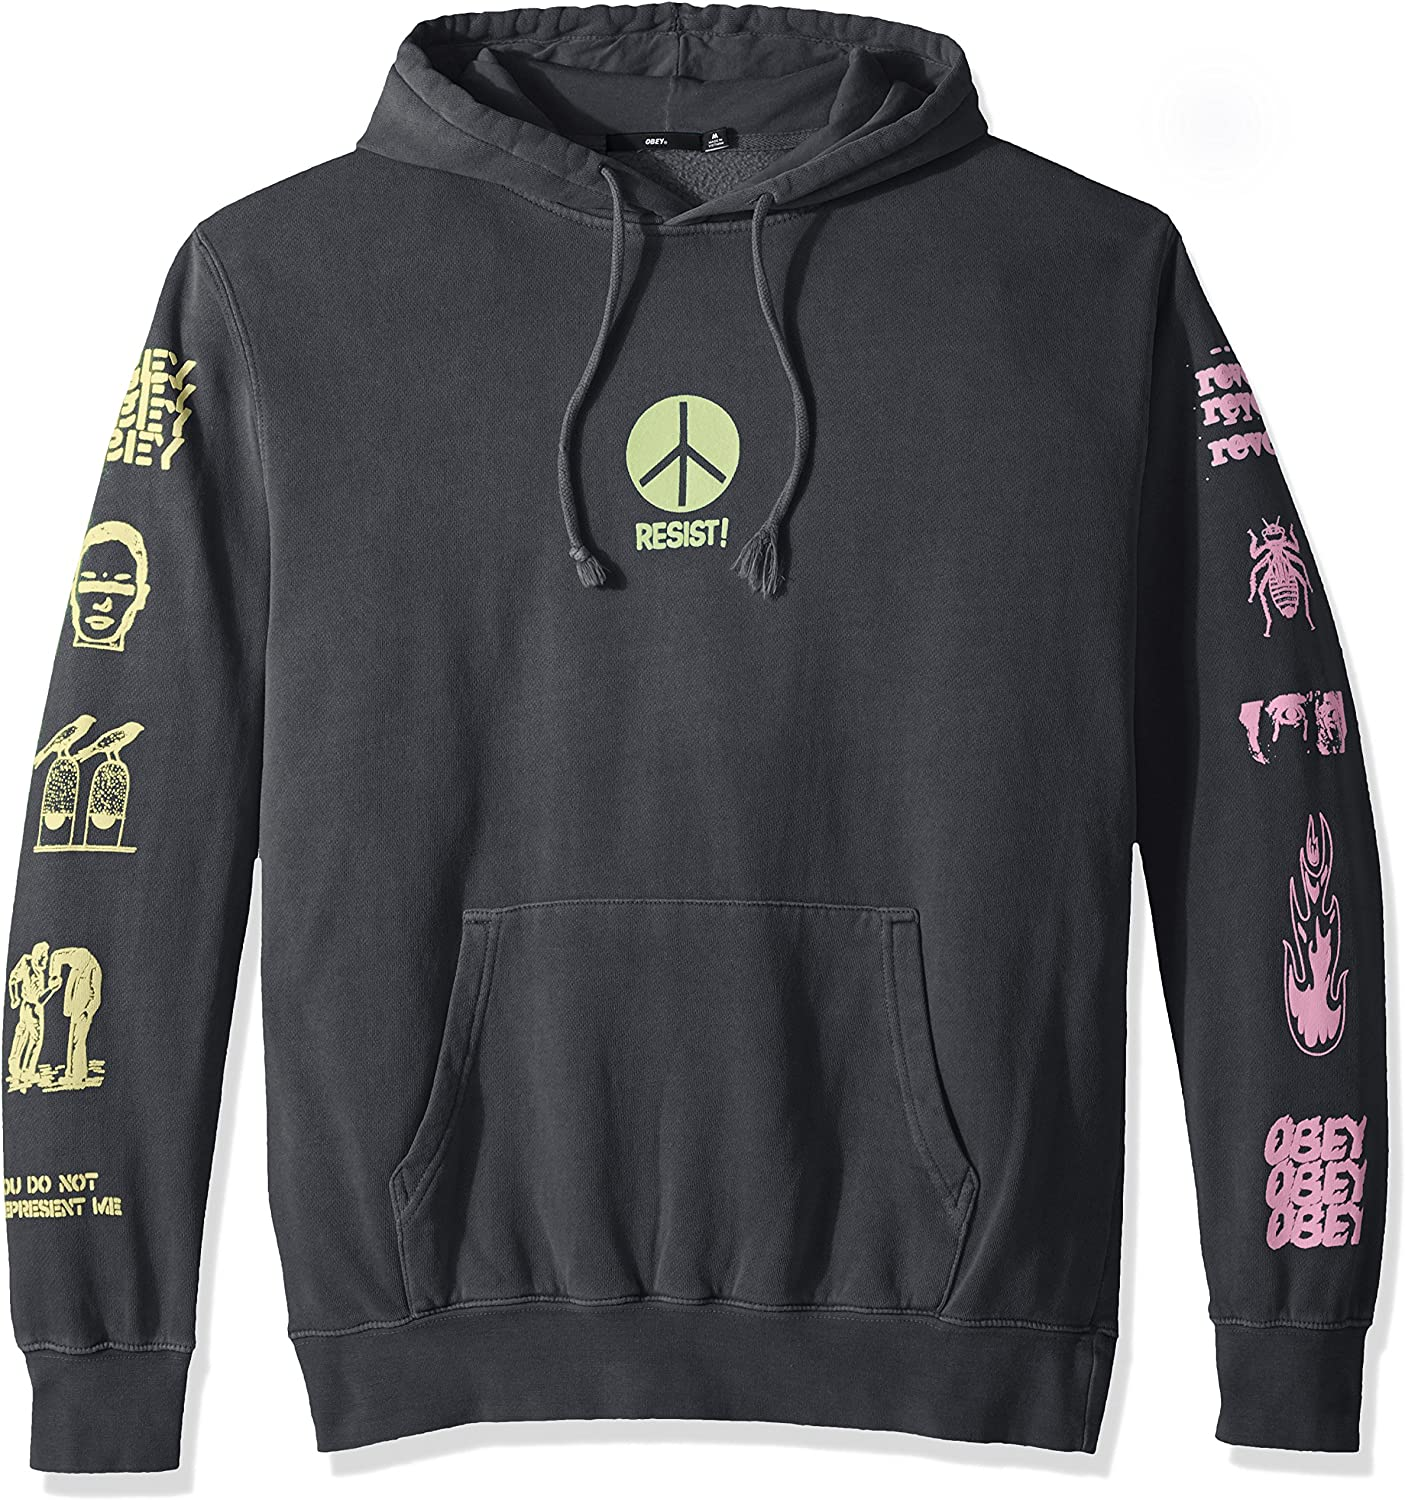 Obey Men's The Next Wave Sweatshirt Hooded Pullover